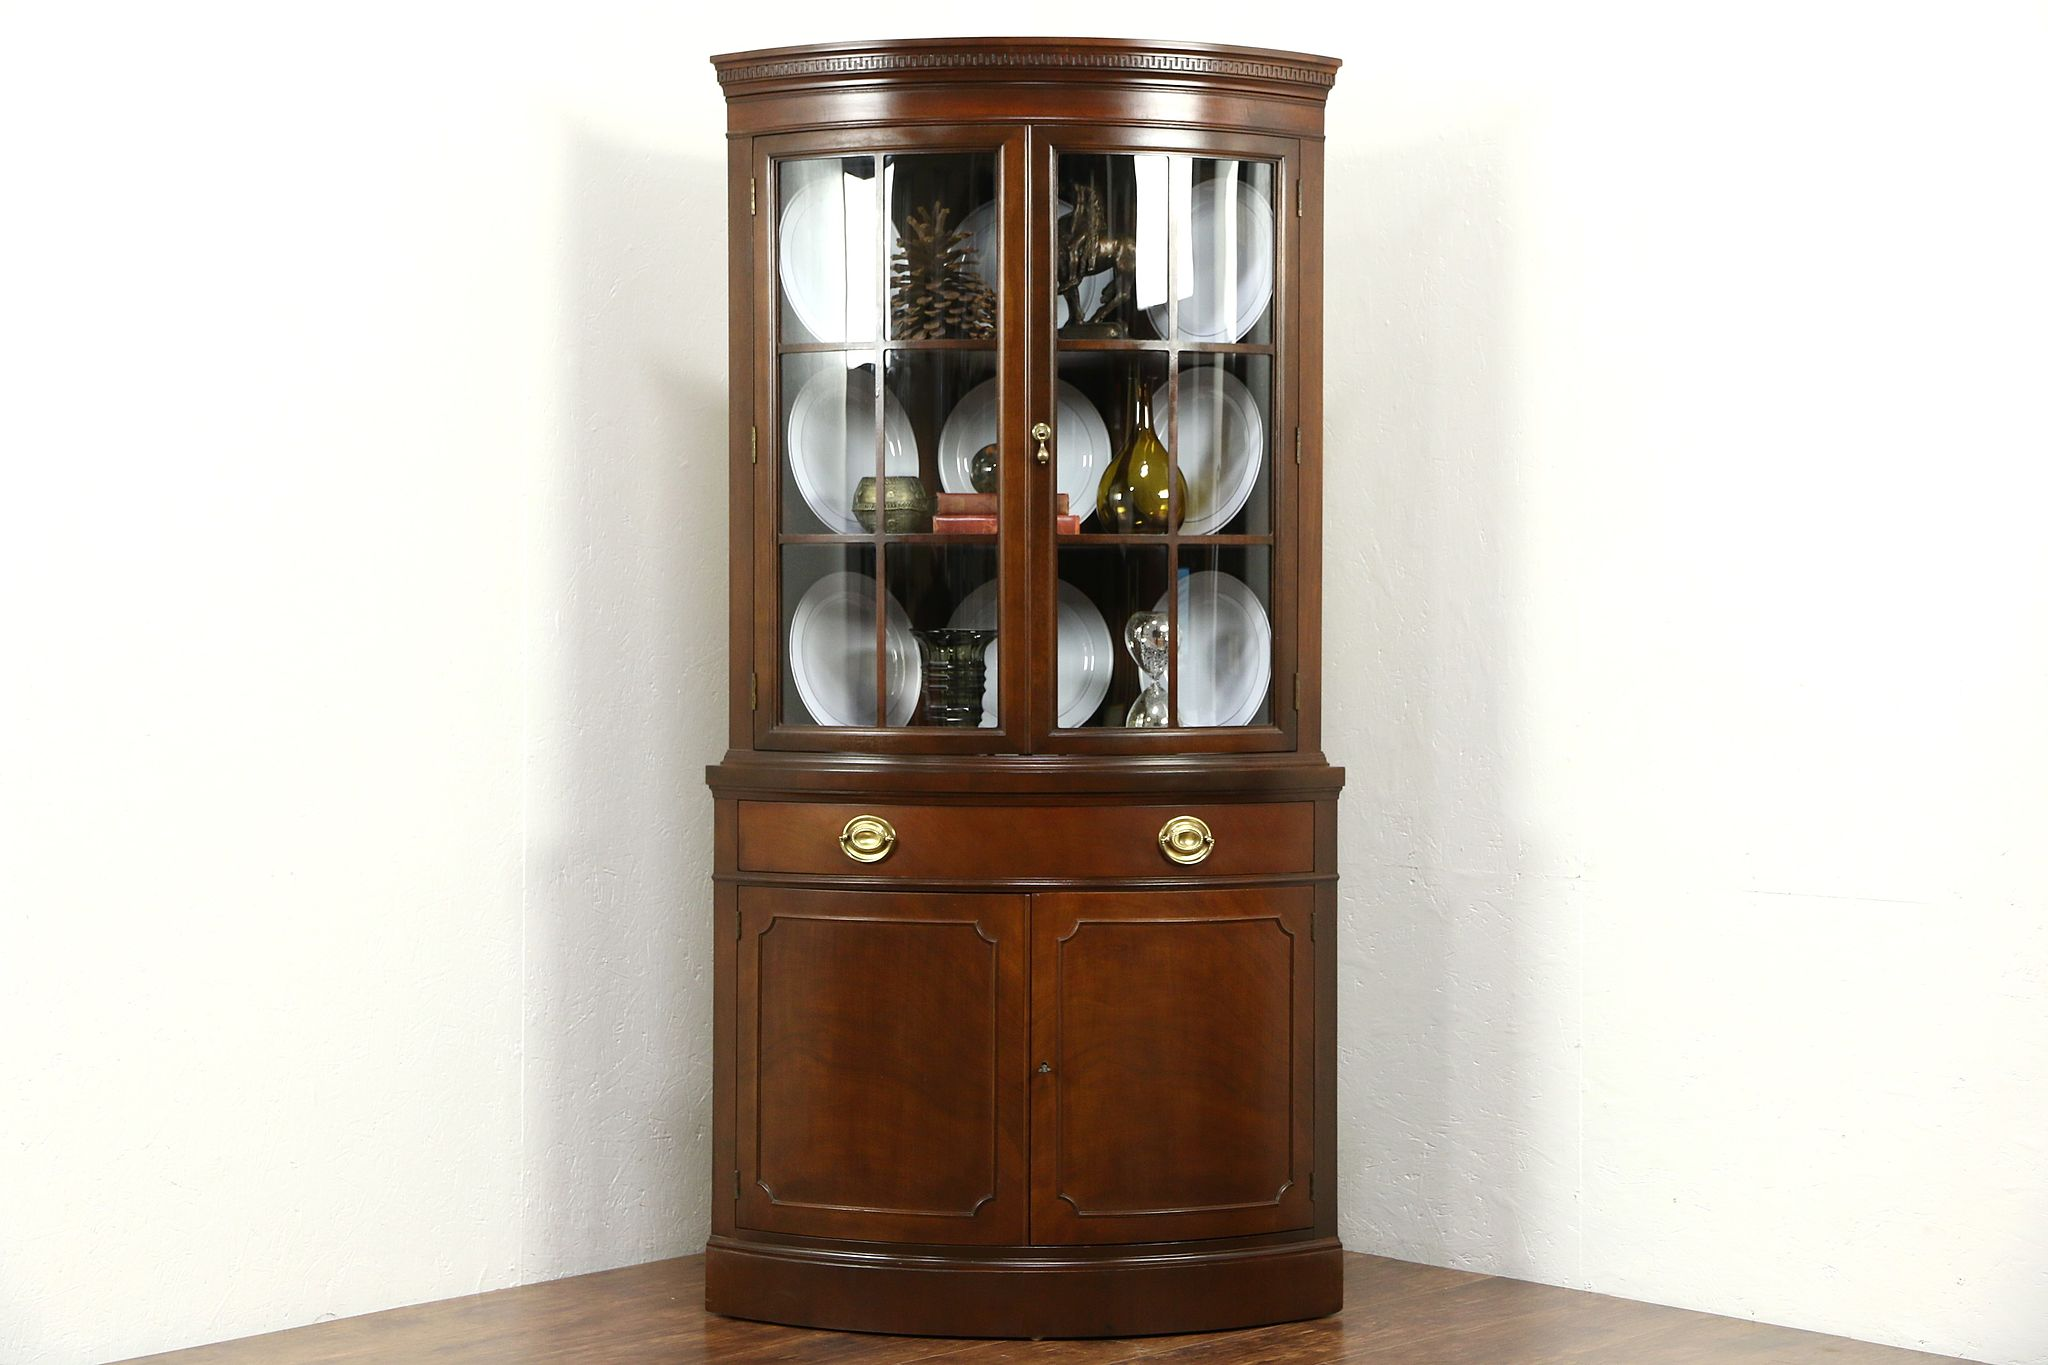 Charmant Drexel Travis Court Signed Vintage Mahogany Corner Cabinet, Curved Glass